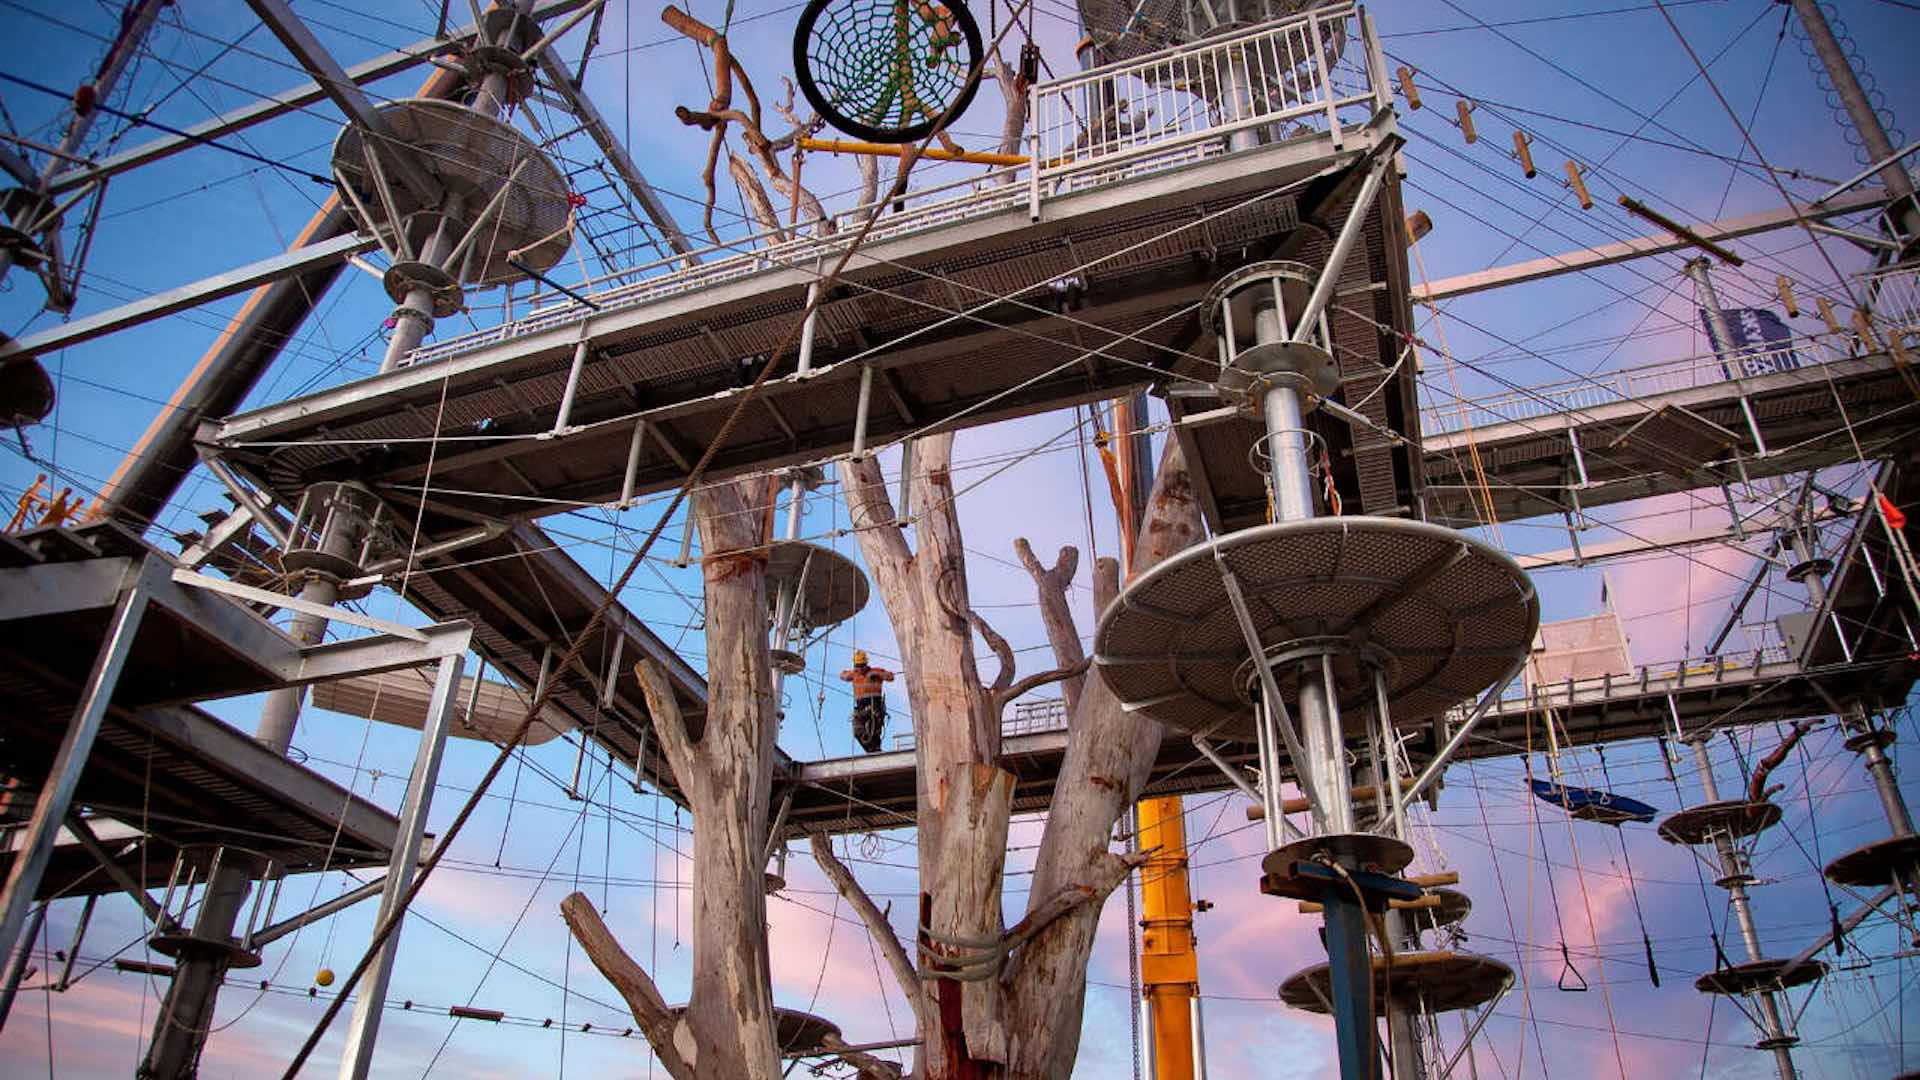 An Adrenaline Rush at Skypeak Aerial Park